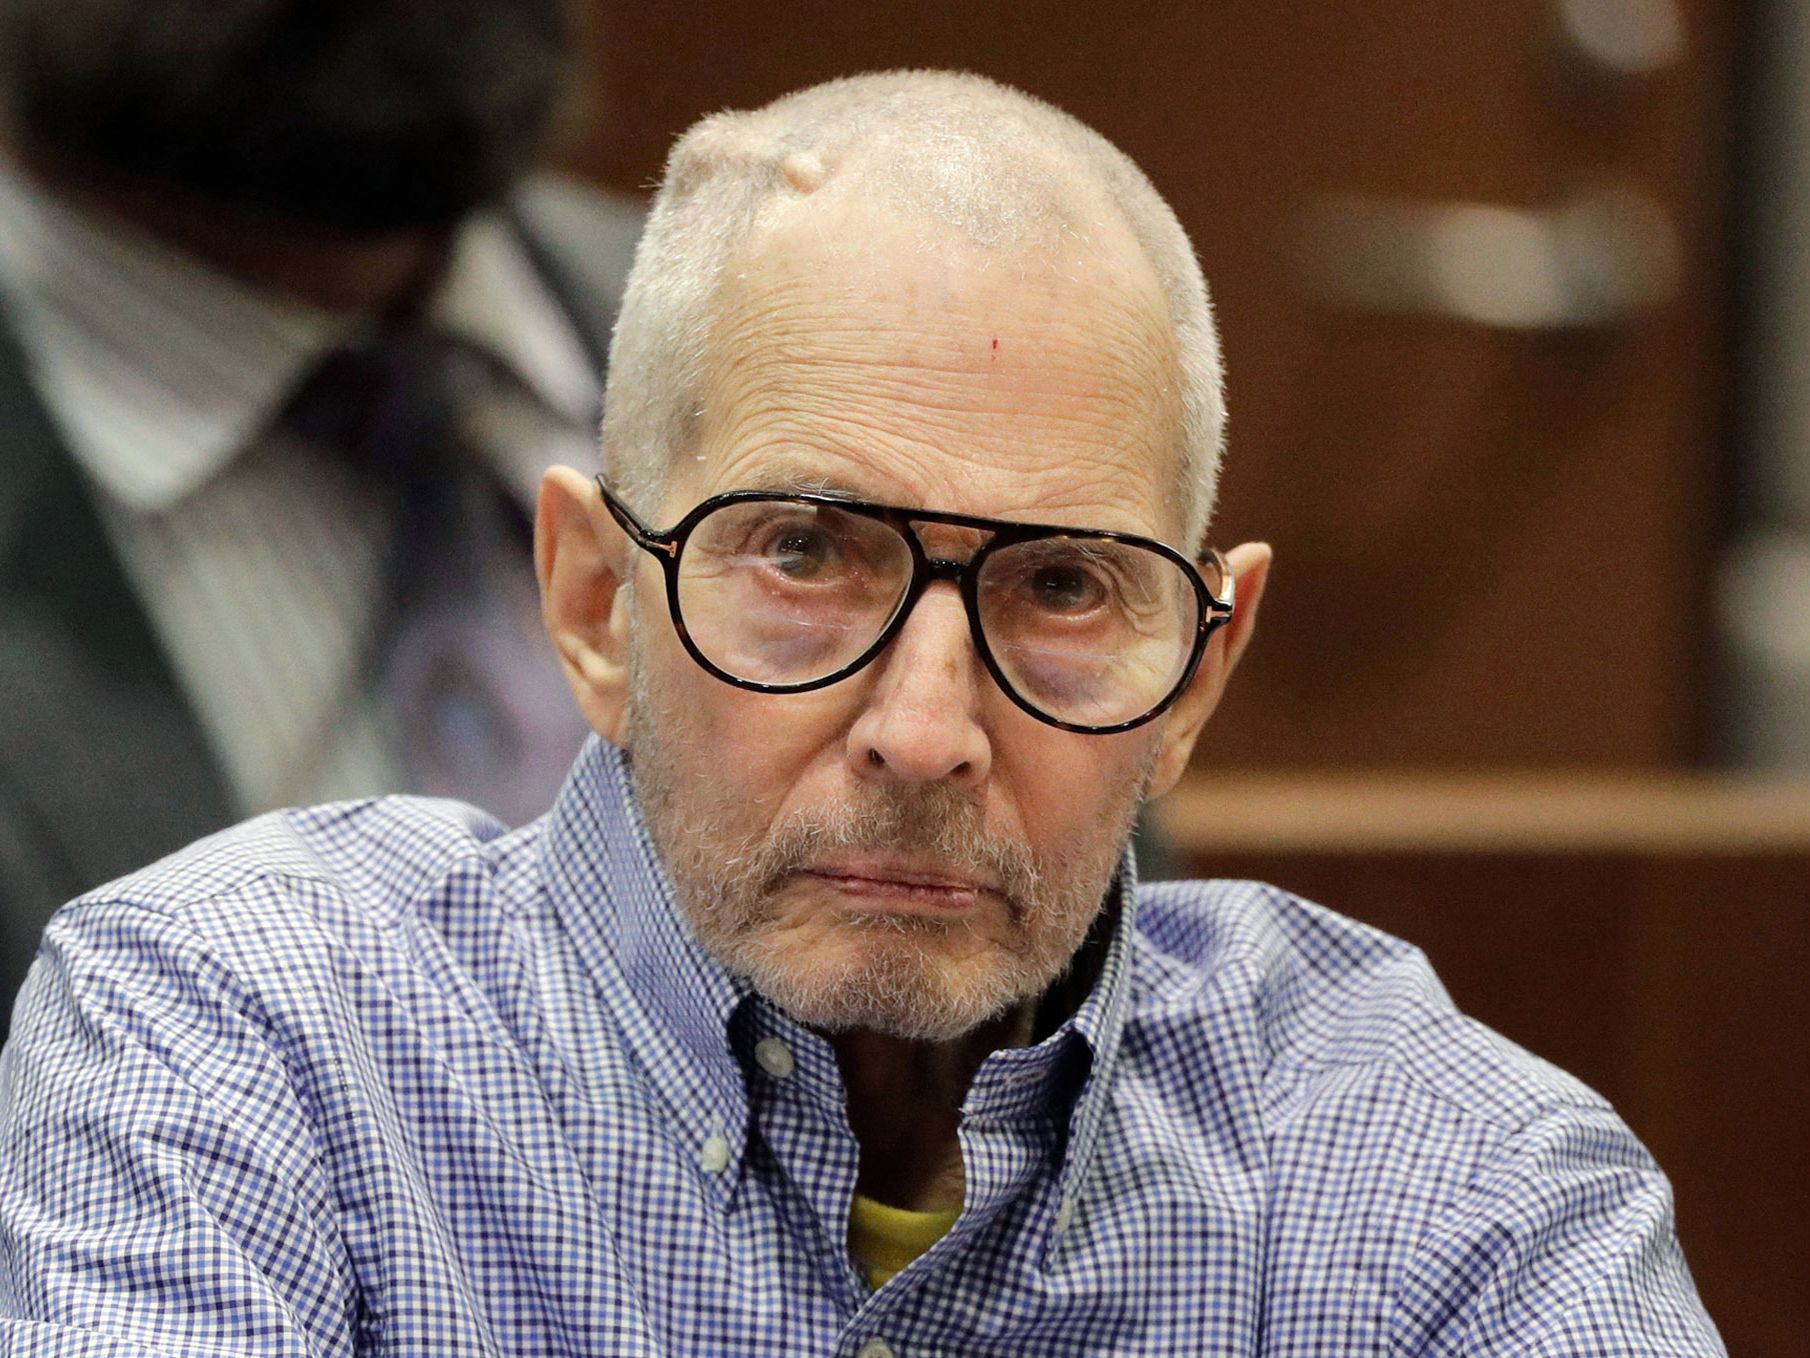 Eccentric millionaire Durst faces trial in friend's killing